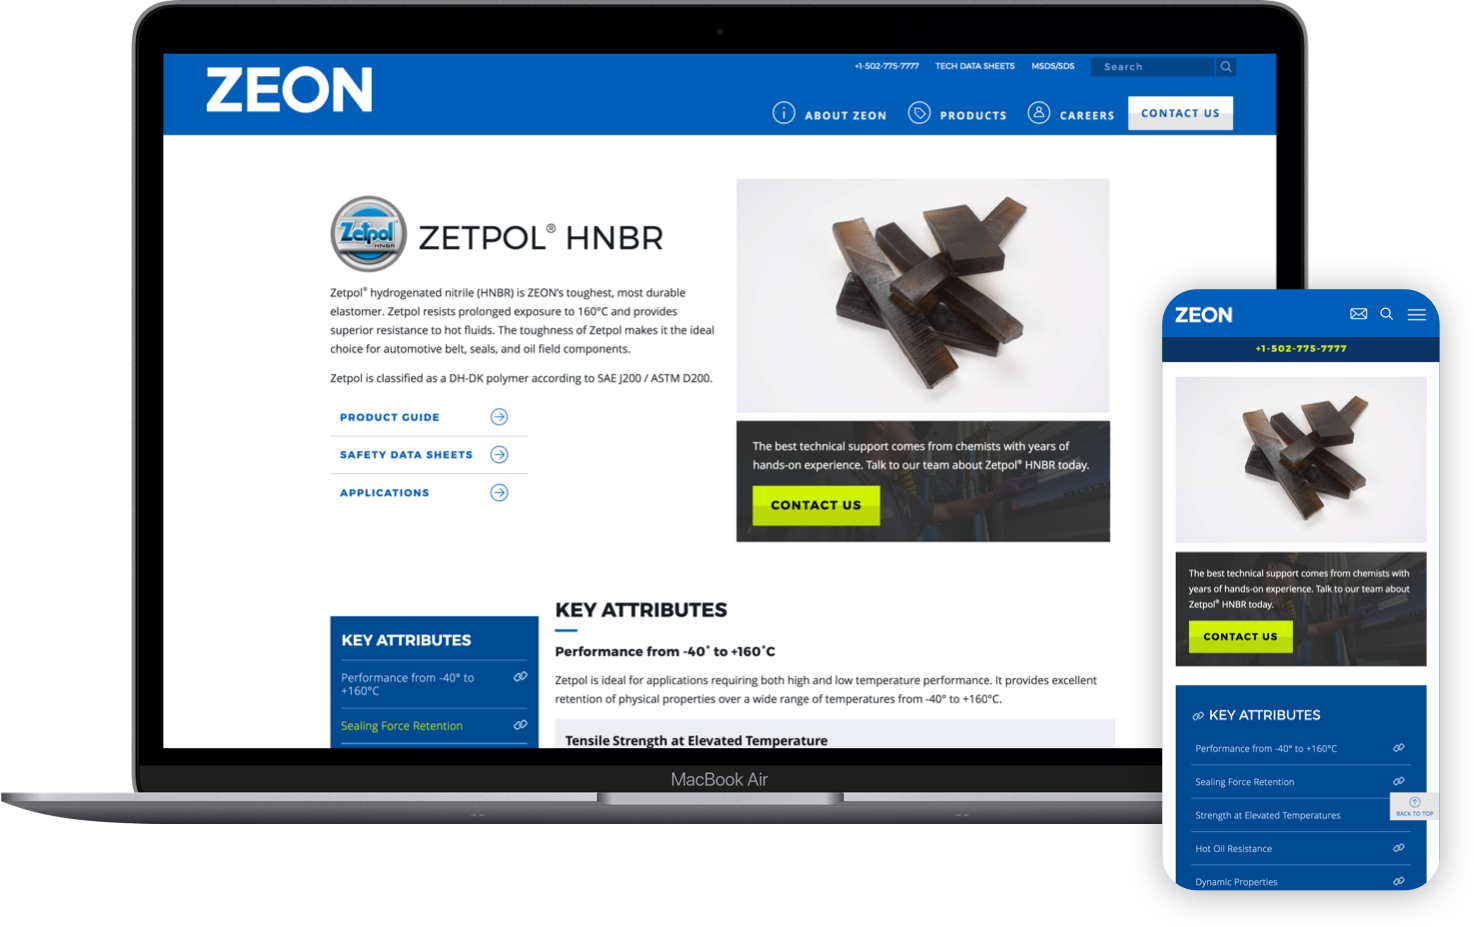 laptop and mobile device displaying the new zeon website